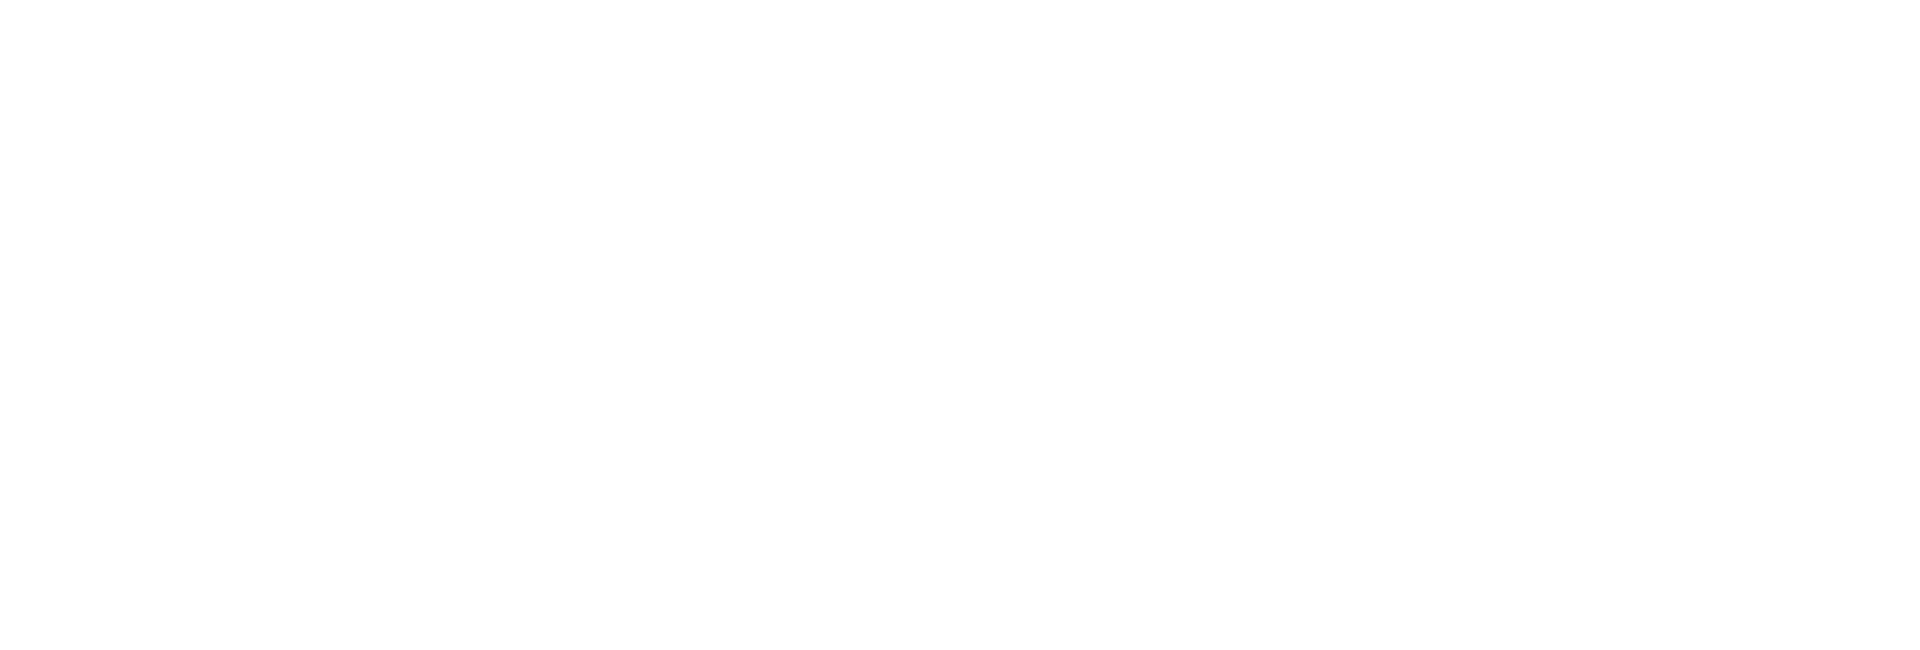 Nutrihealth Basic